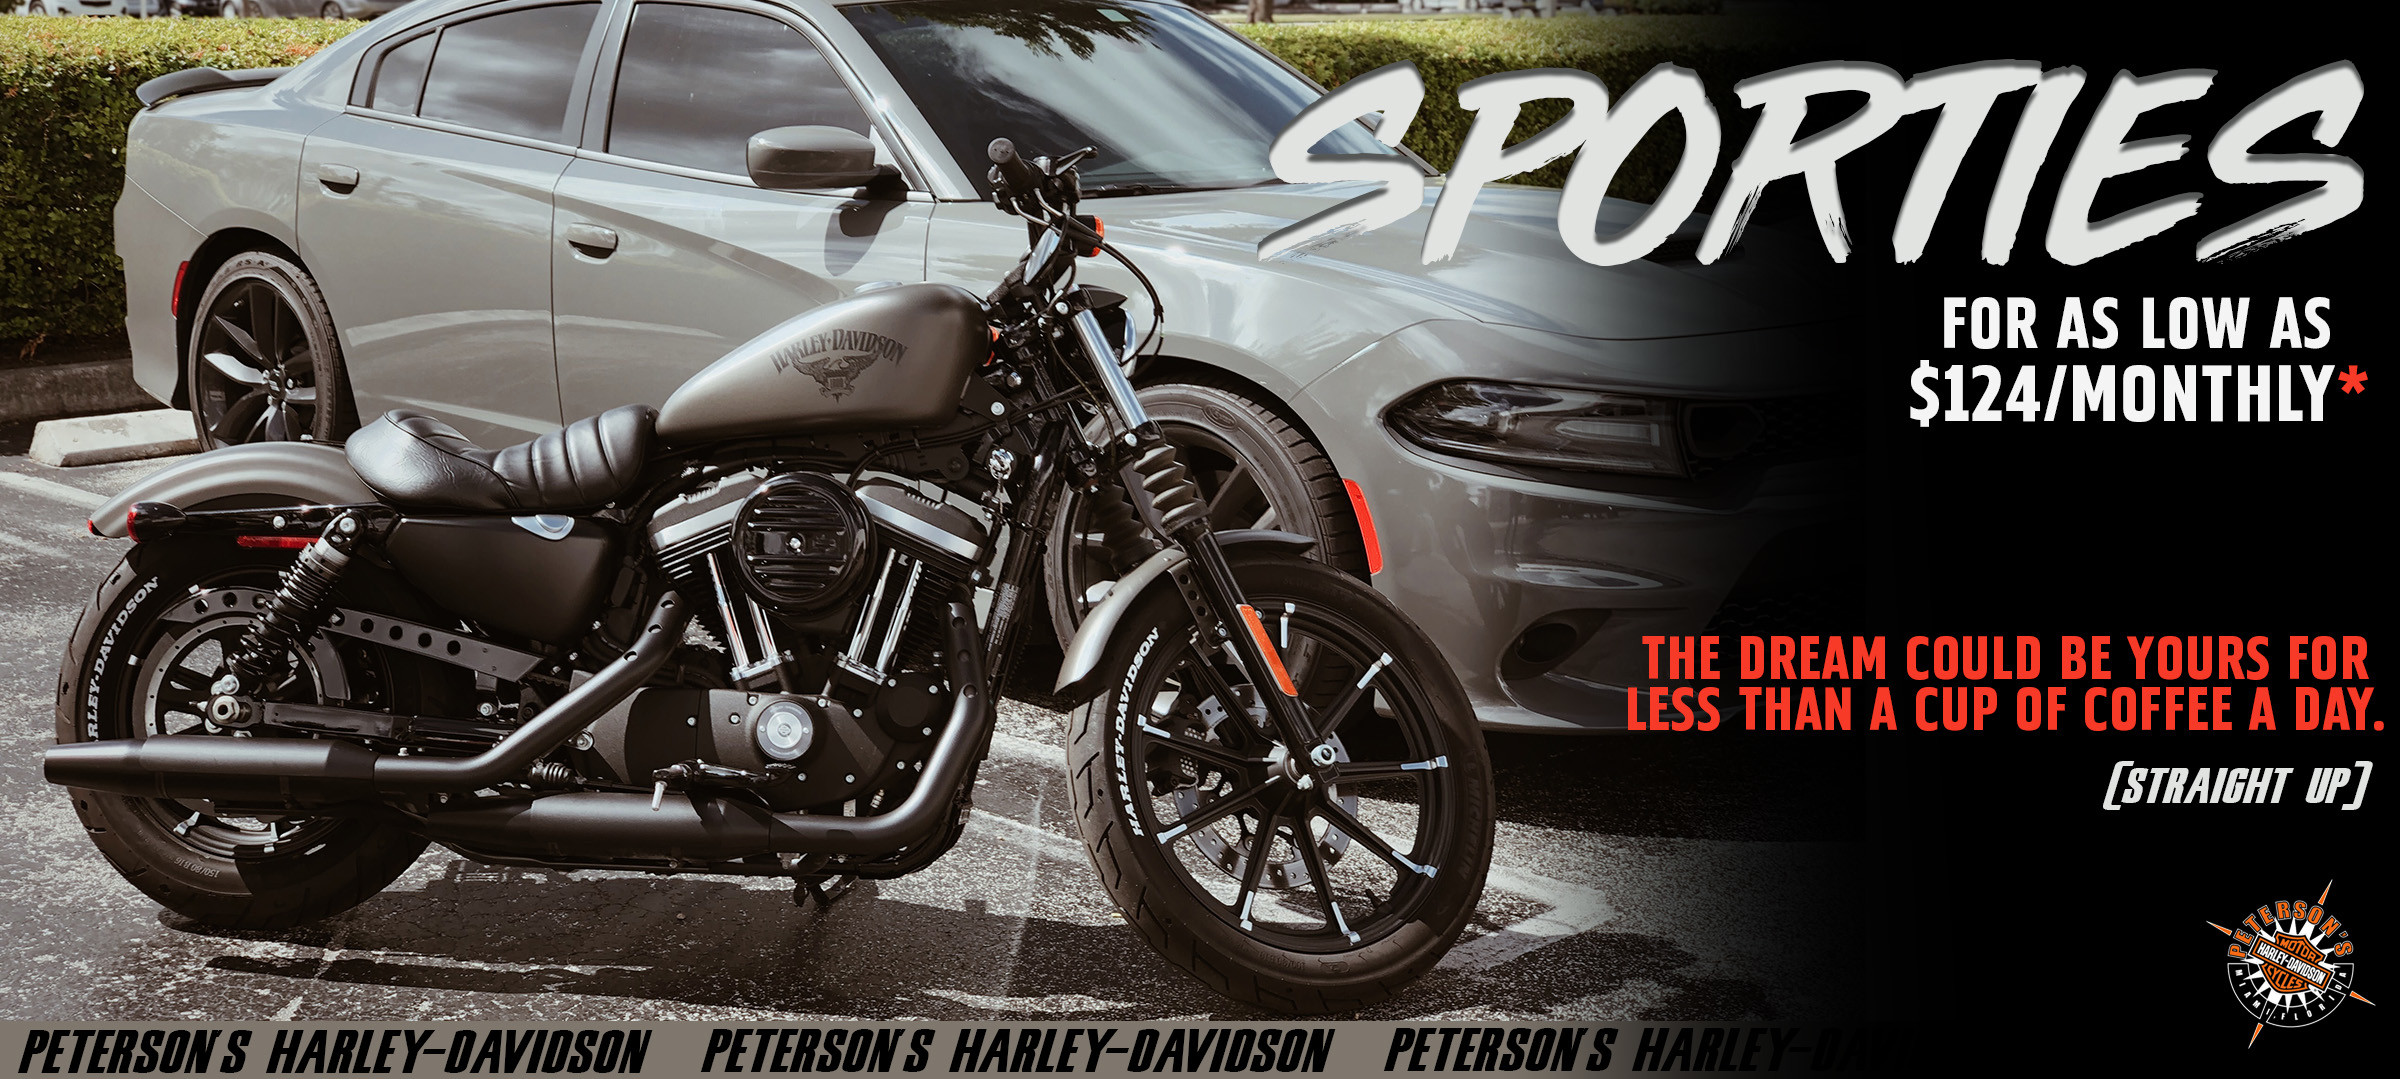 Peterson's Harley-Davidson® | Miami, FL | Peterson's Harley